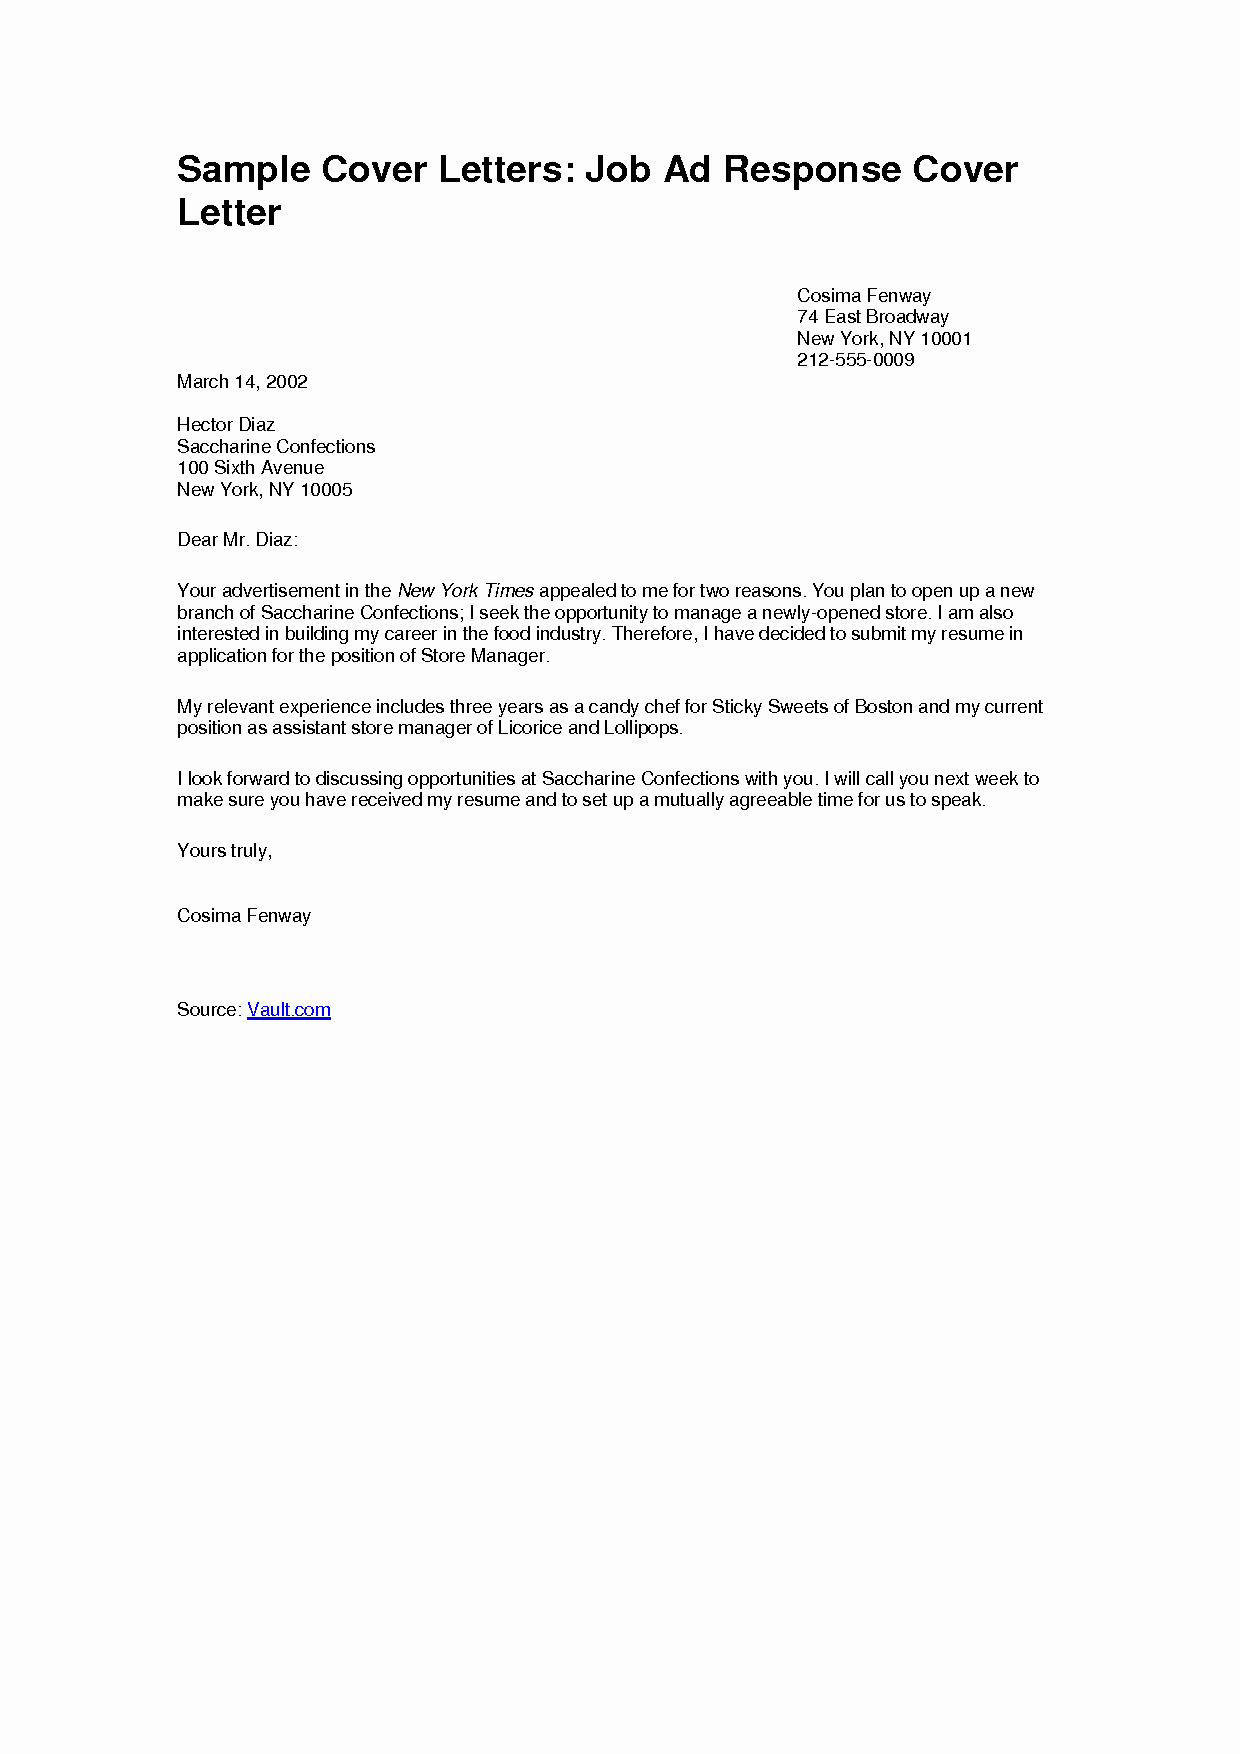 Applying for Jobs Letter Fresh Sample Cover Letter for Applying A Job